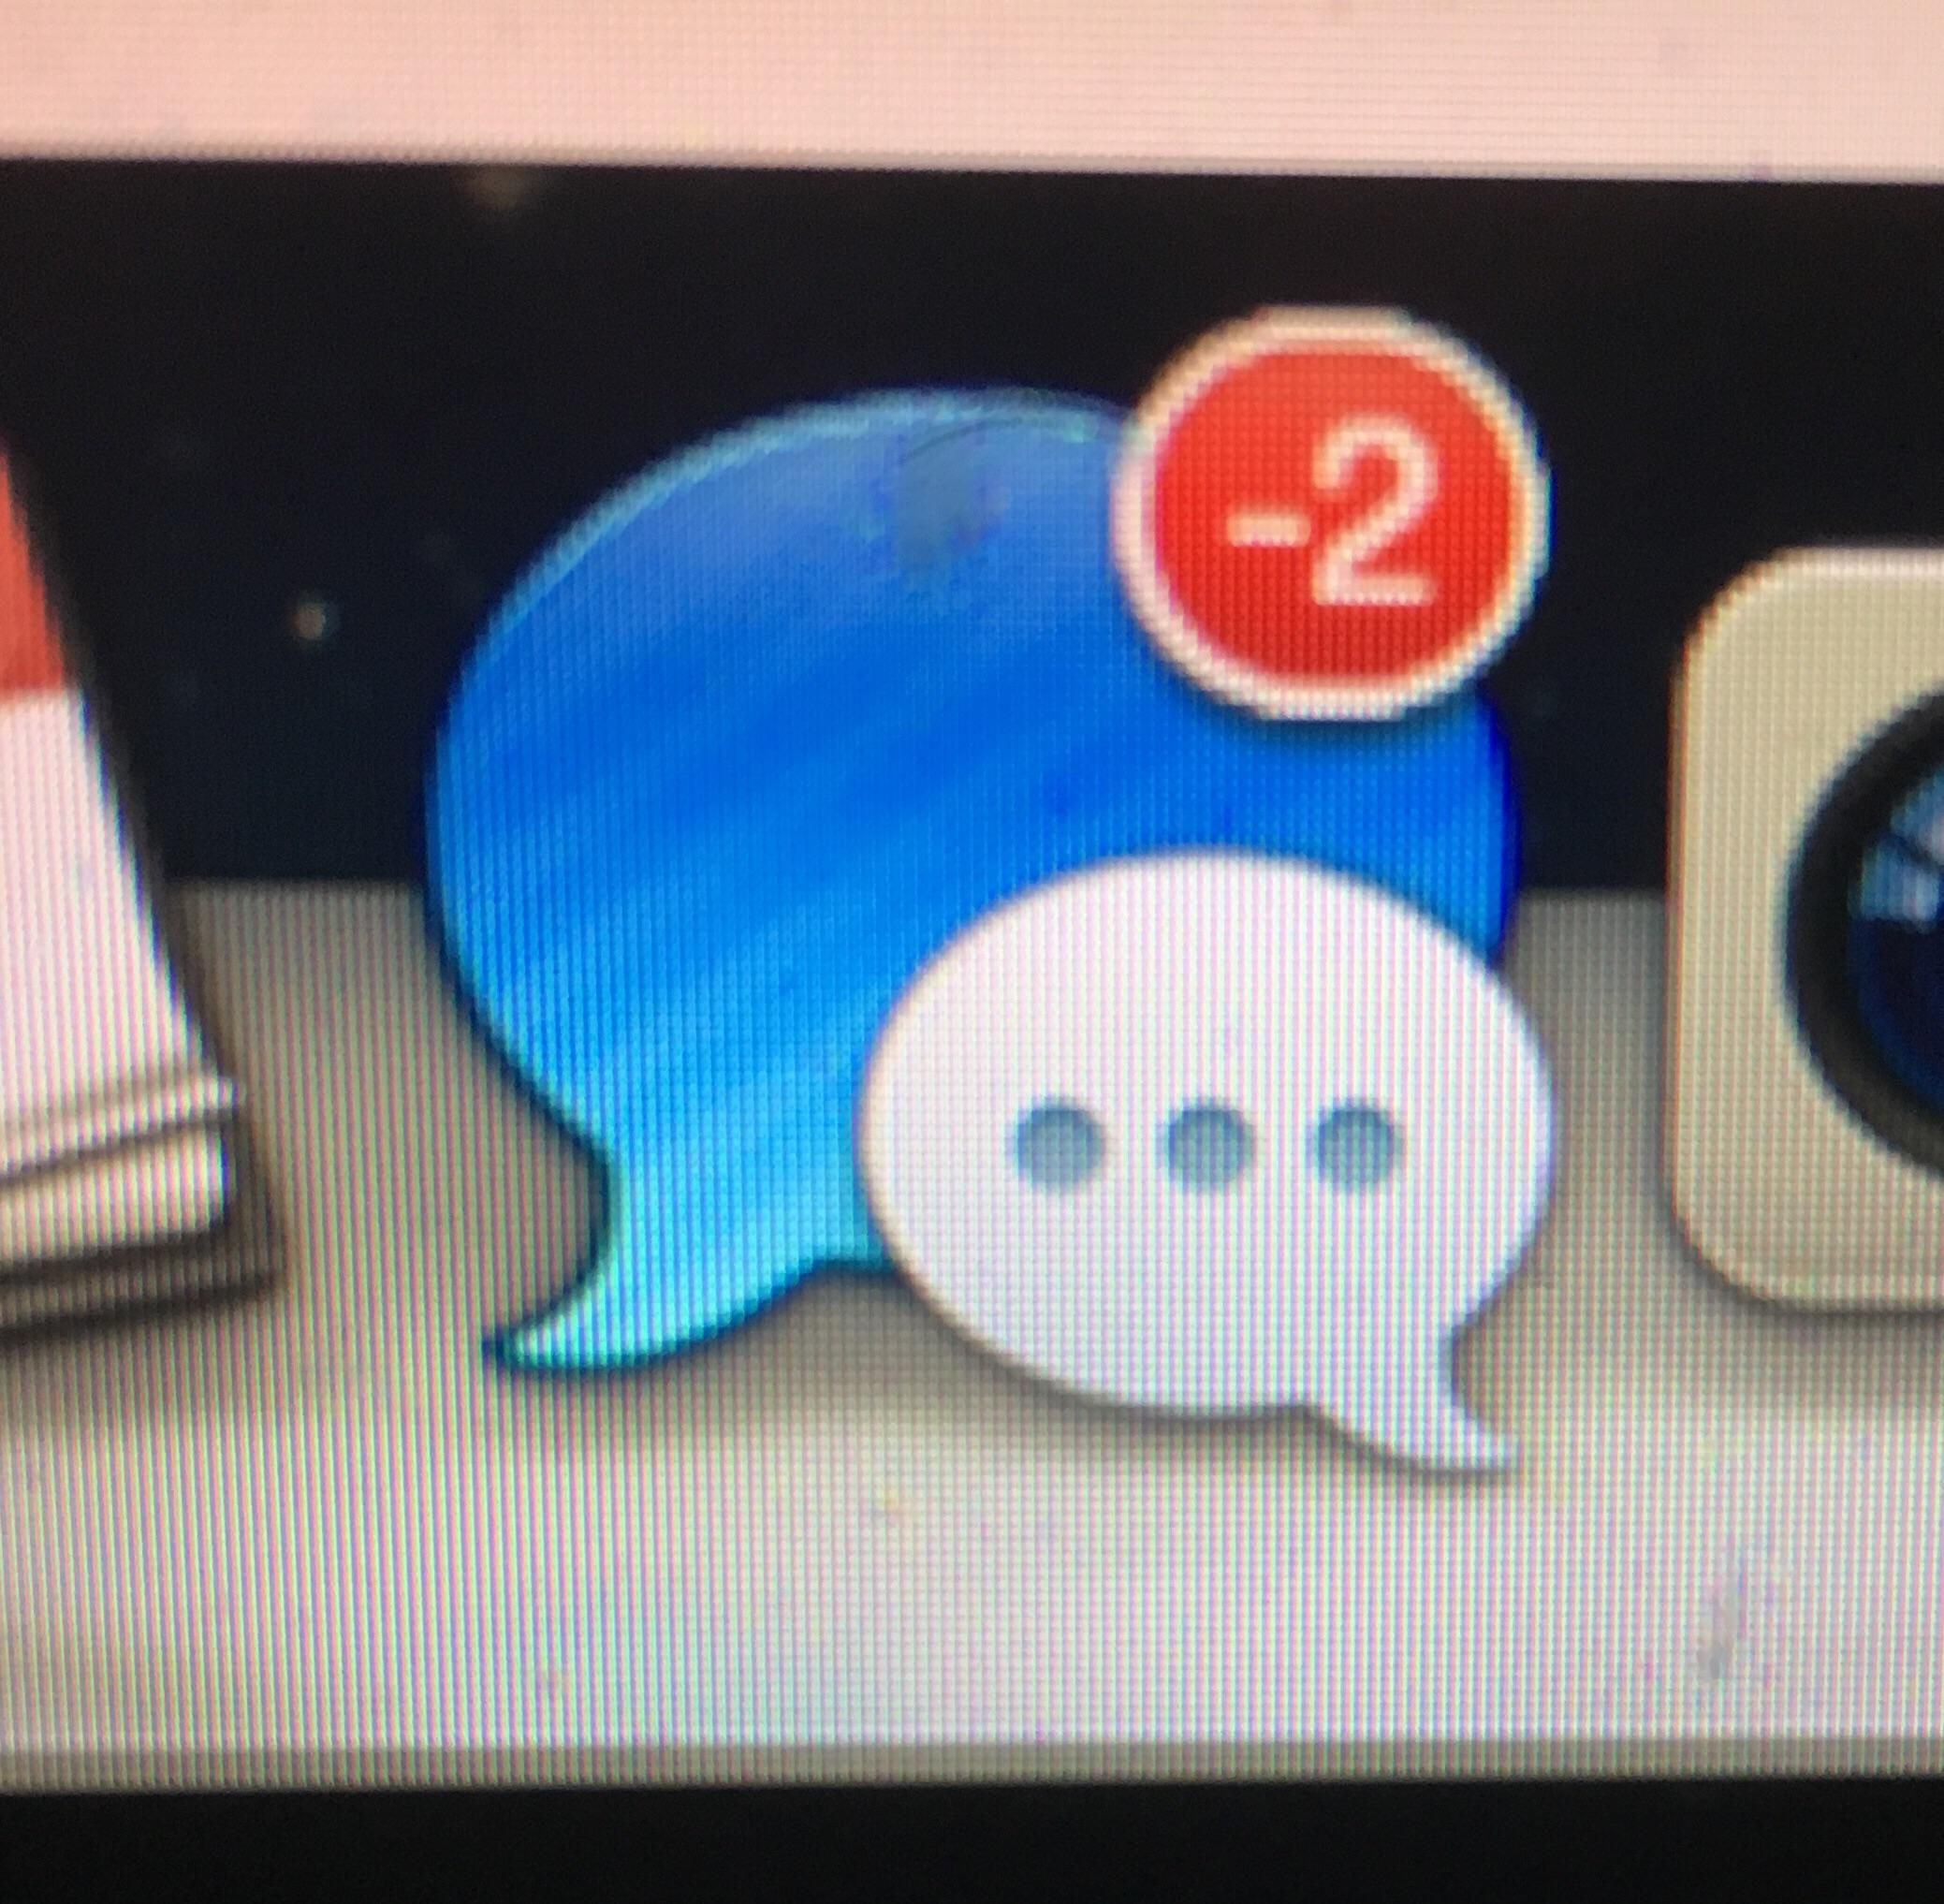 This is how unpopular I am